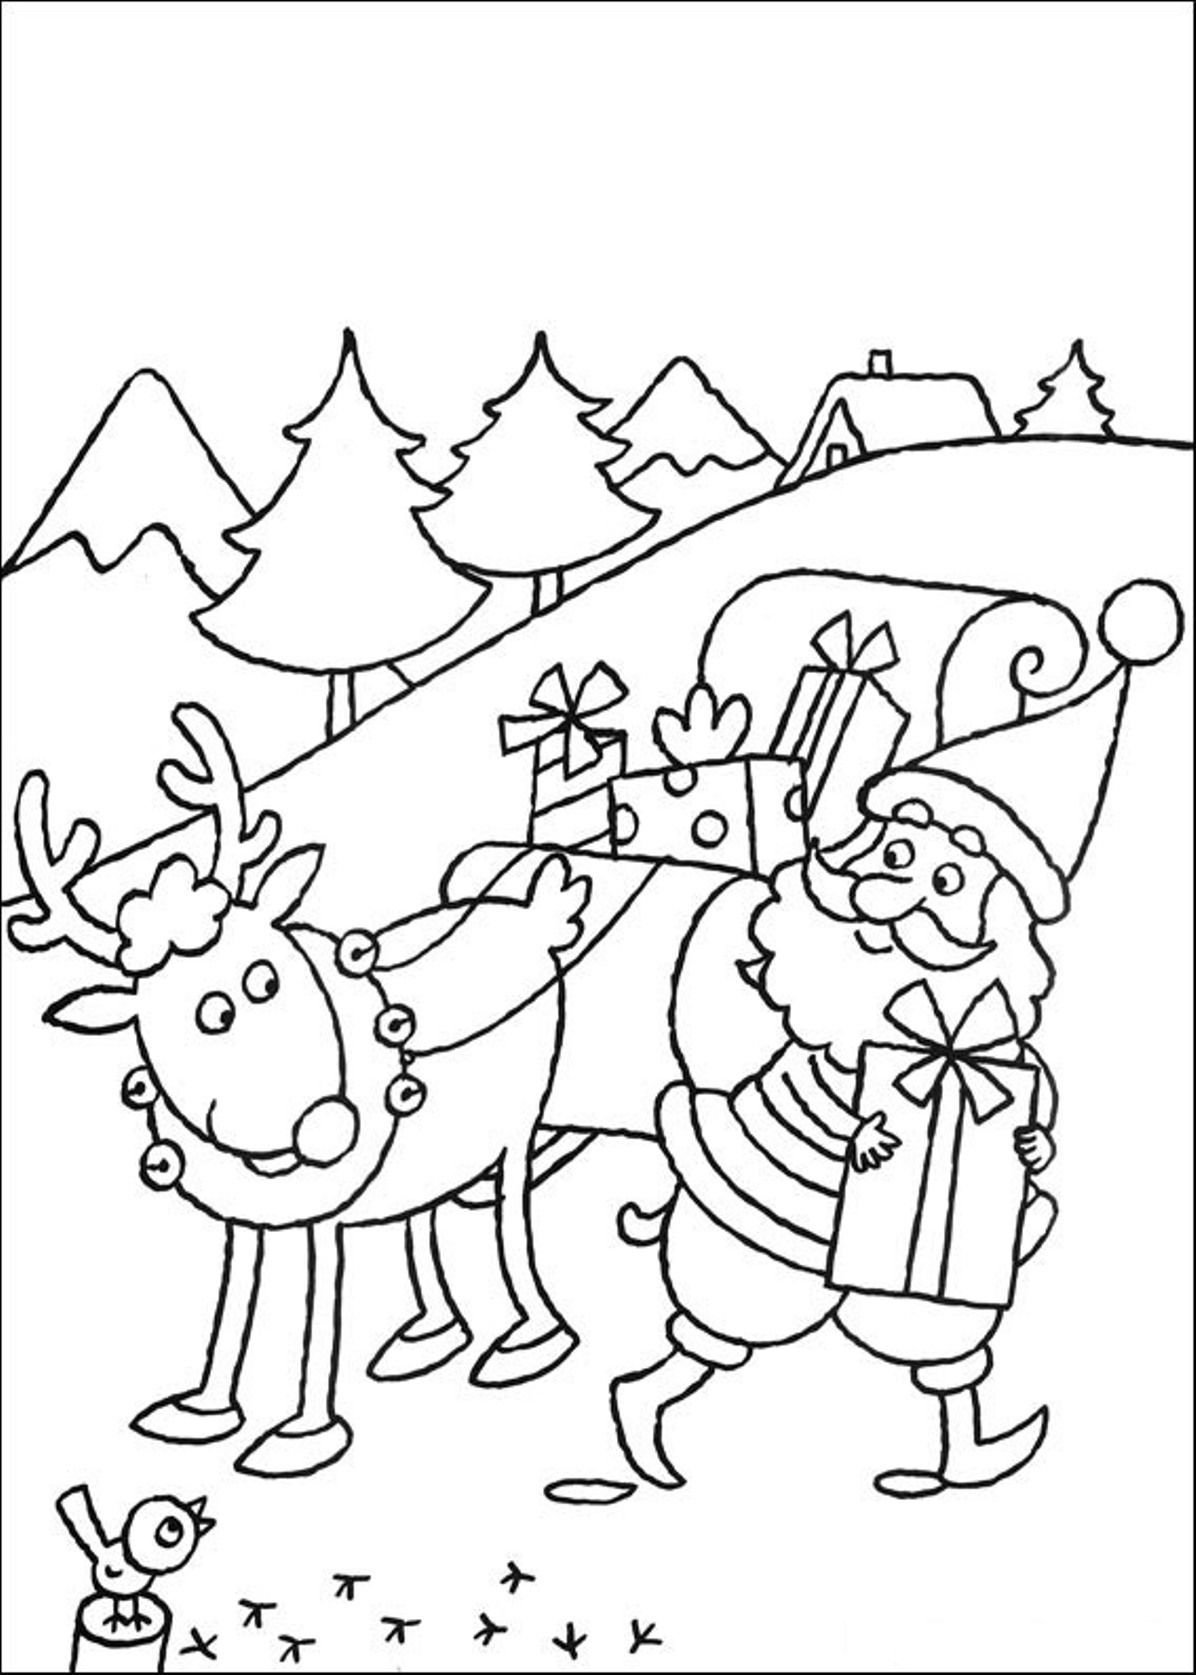 Reindeer Coloring Pages Christmas Coloring Pages Printable